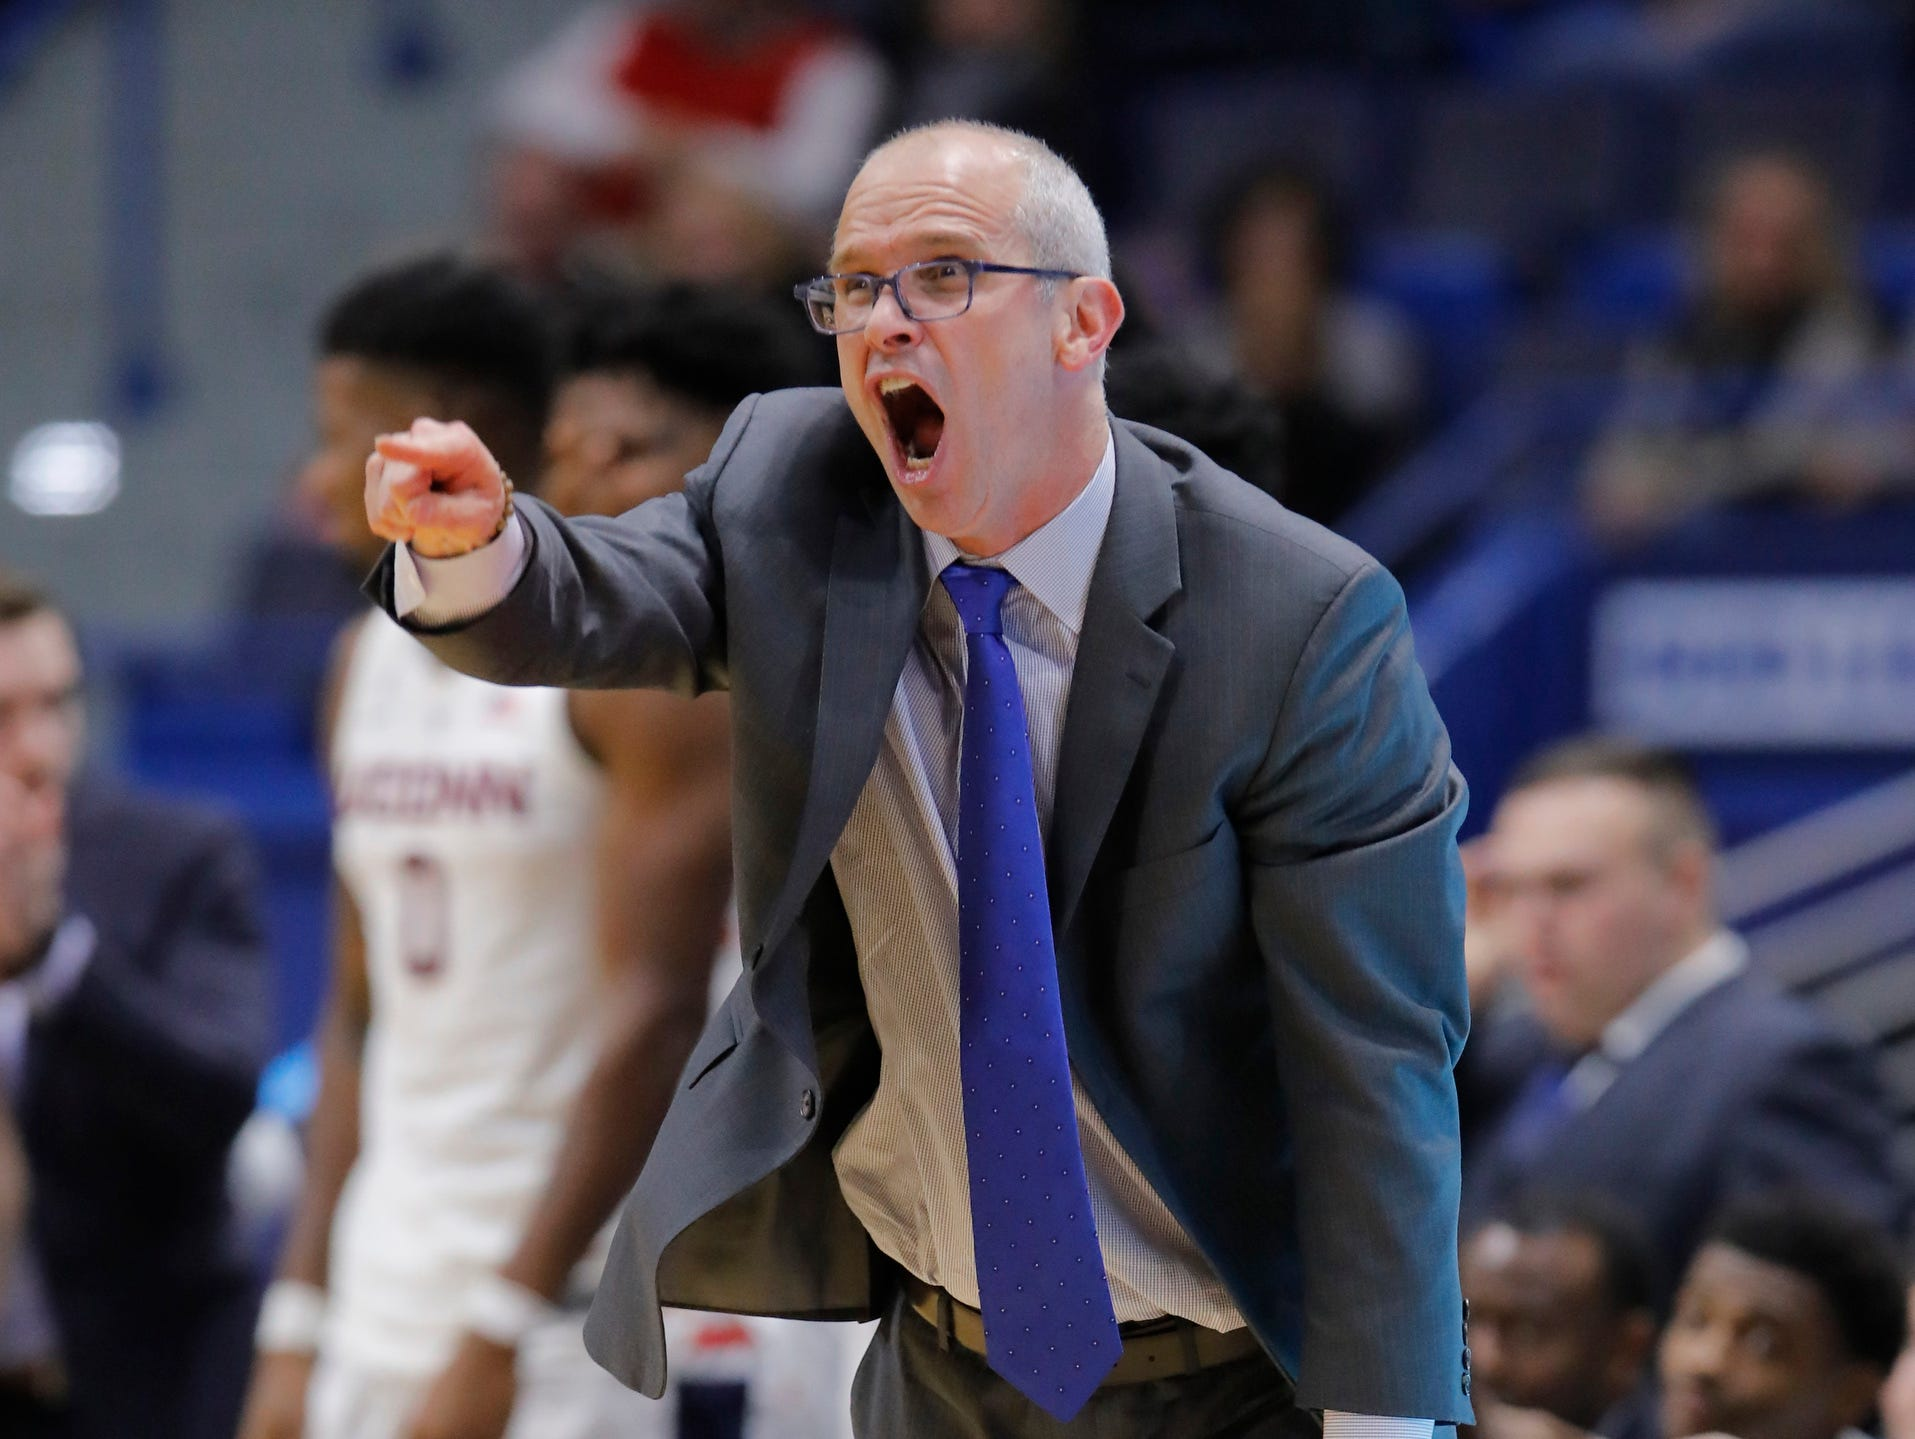 Nov 20, 2018; Storrs, CT, USA; Connecticut Huskies head coach Dan Hurley reacts from the sideline during the second half against the Cornell Big Red in at XL Center. UConn defeated Cornell 91-74. Mandatory Credit: David Butler II-USA TODAY Sports